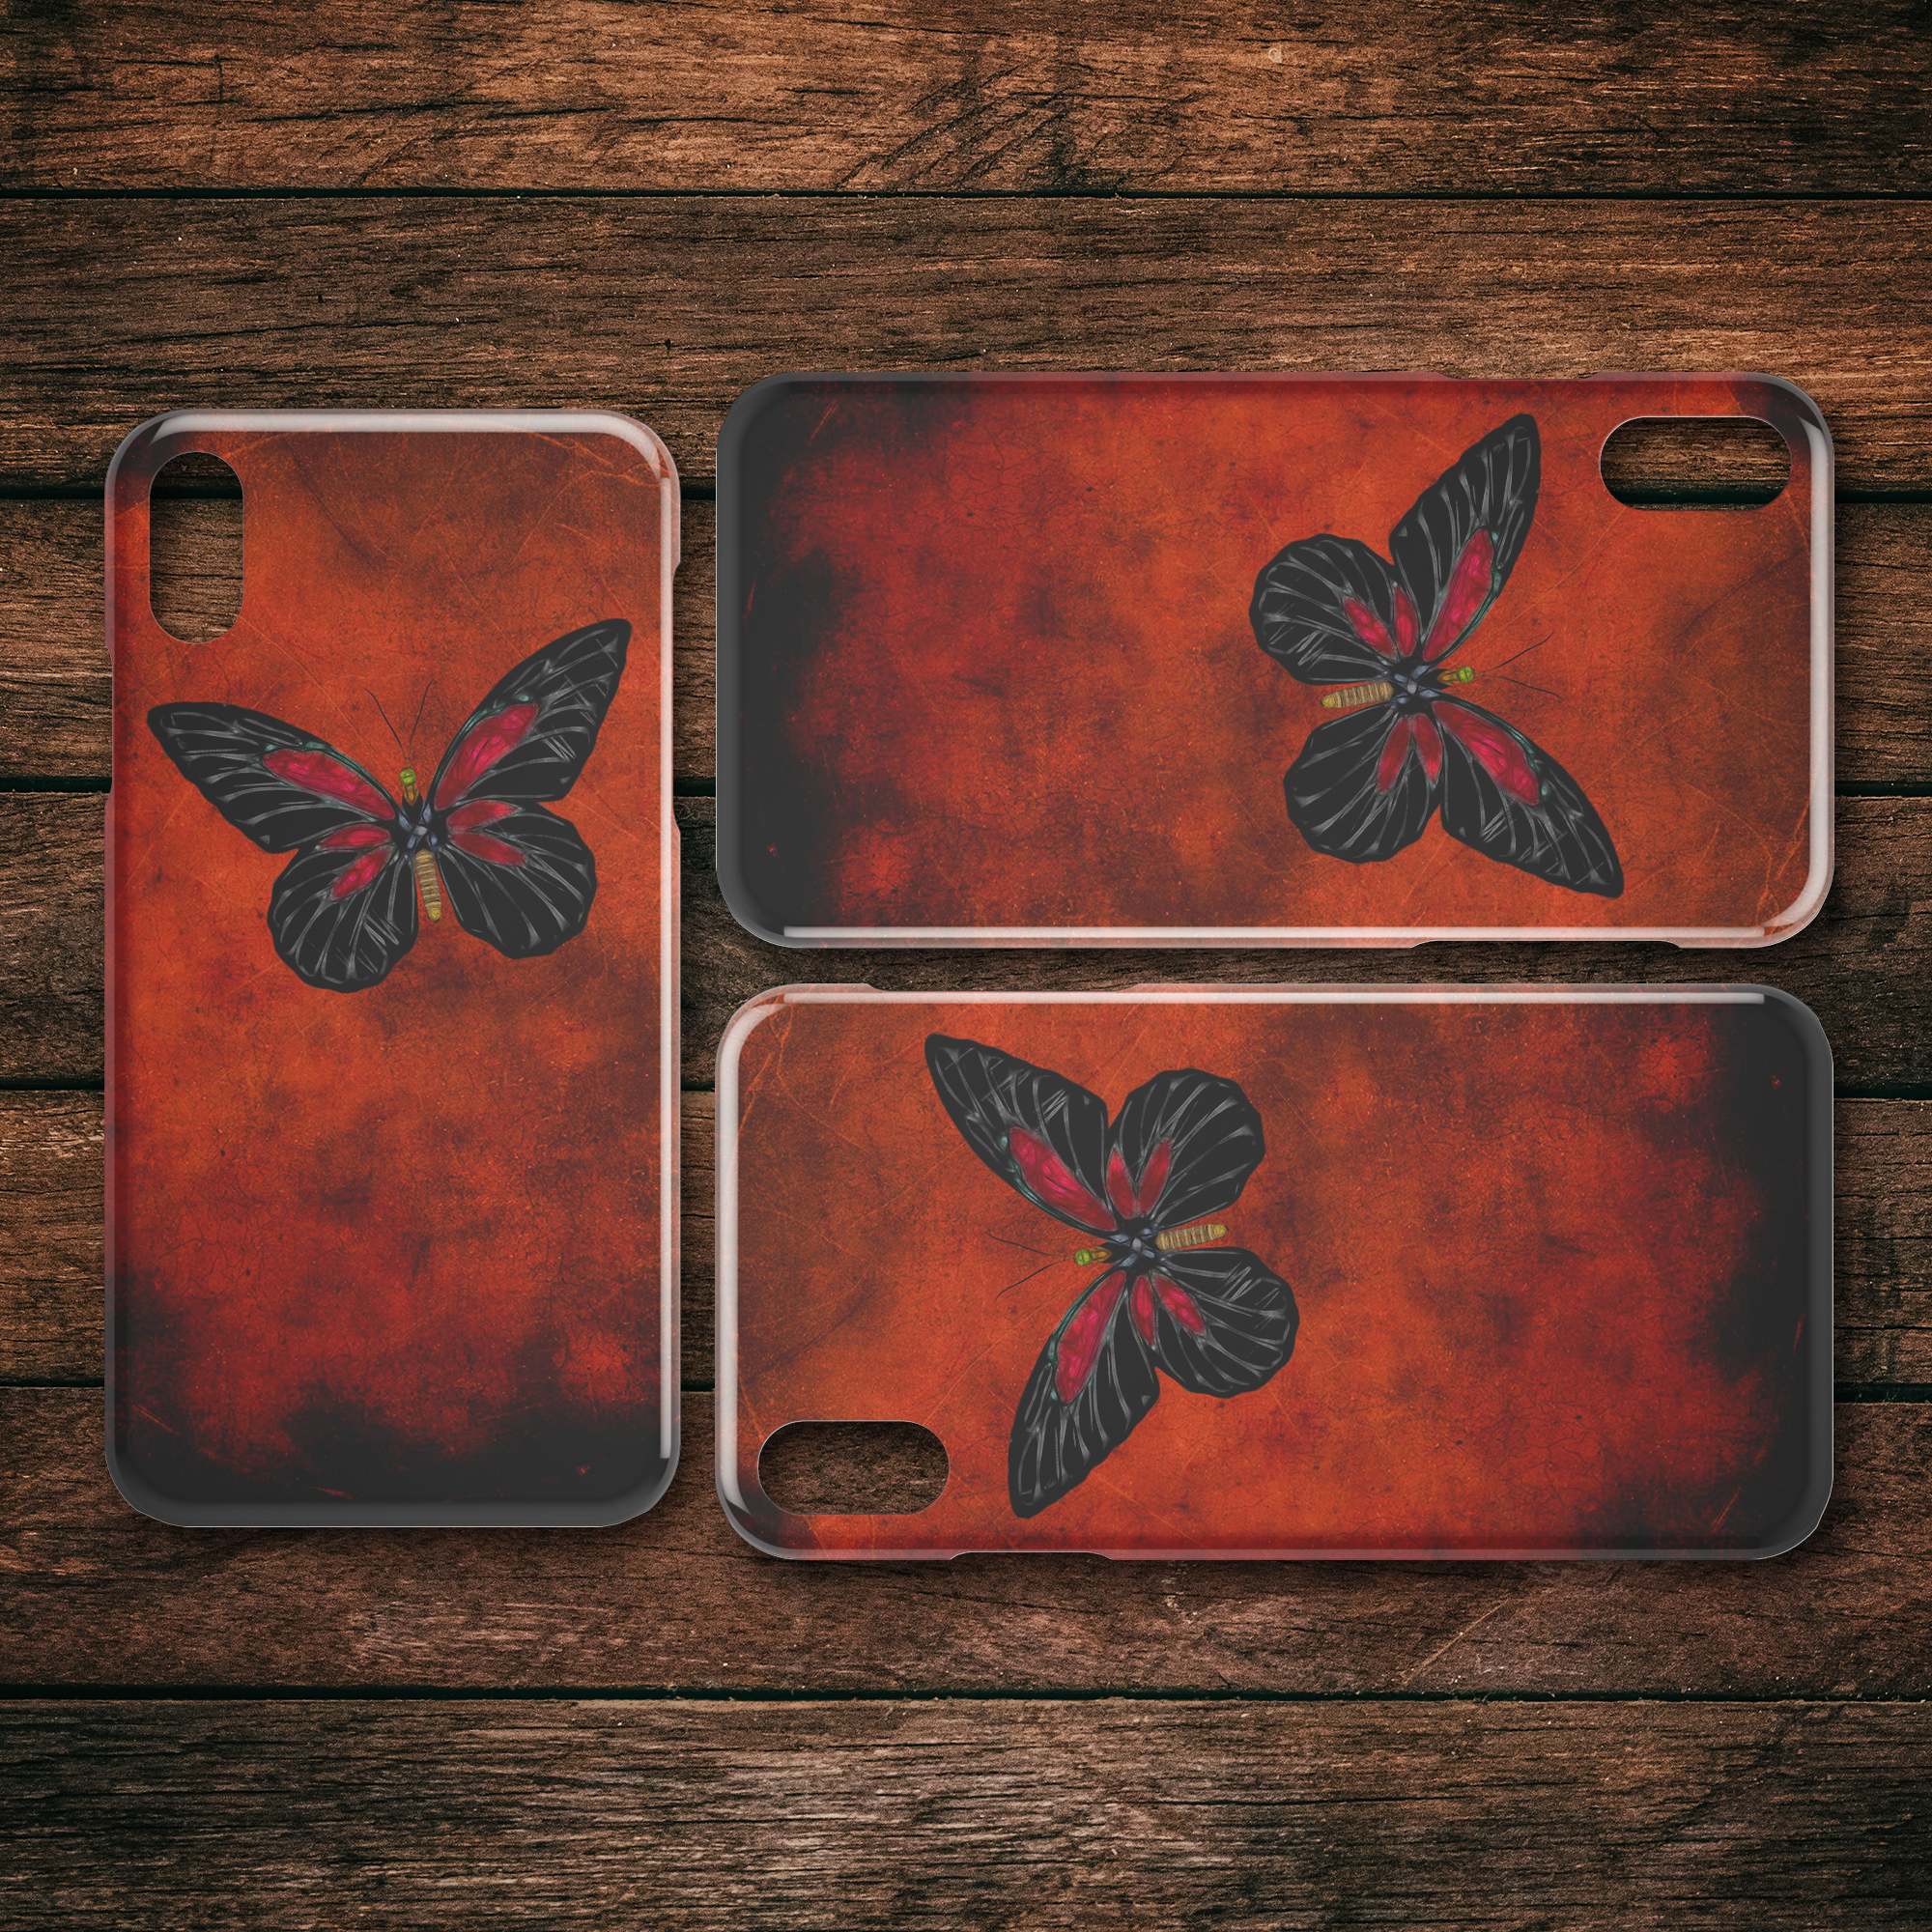 Butterfly 3 - iPhone case